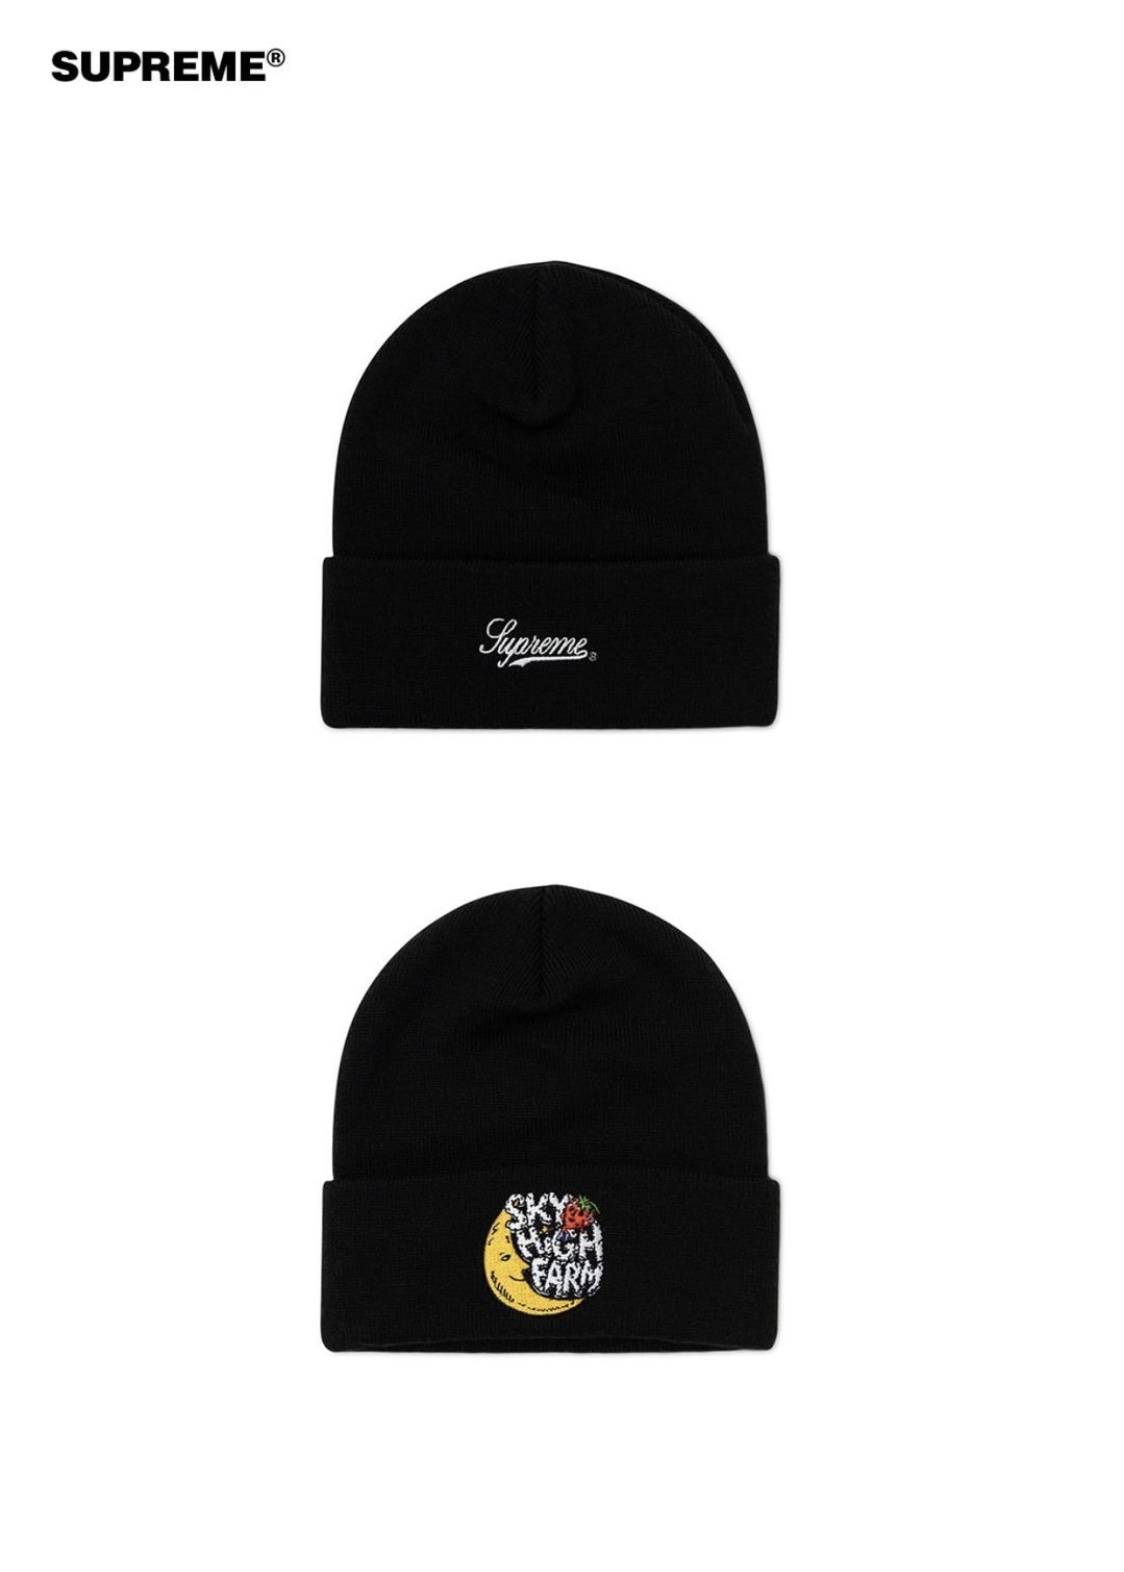 supreme-online-store-20201017-week8-release-items-snap